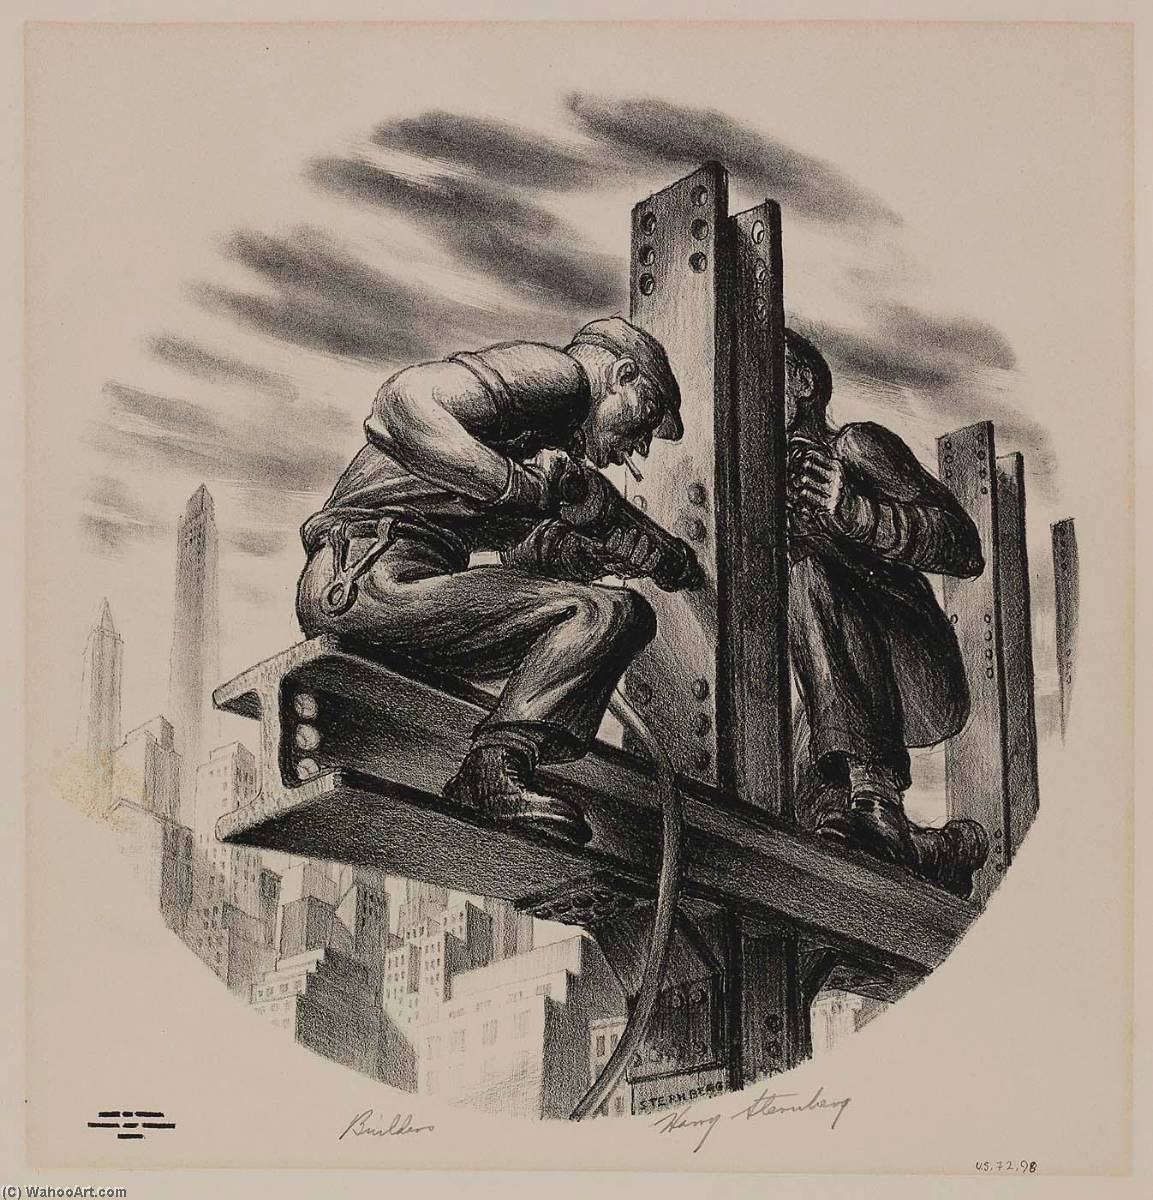 Builders by Harry Sternberg | Art Reproductions Harry Sternberg | WahooArt.com